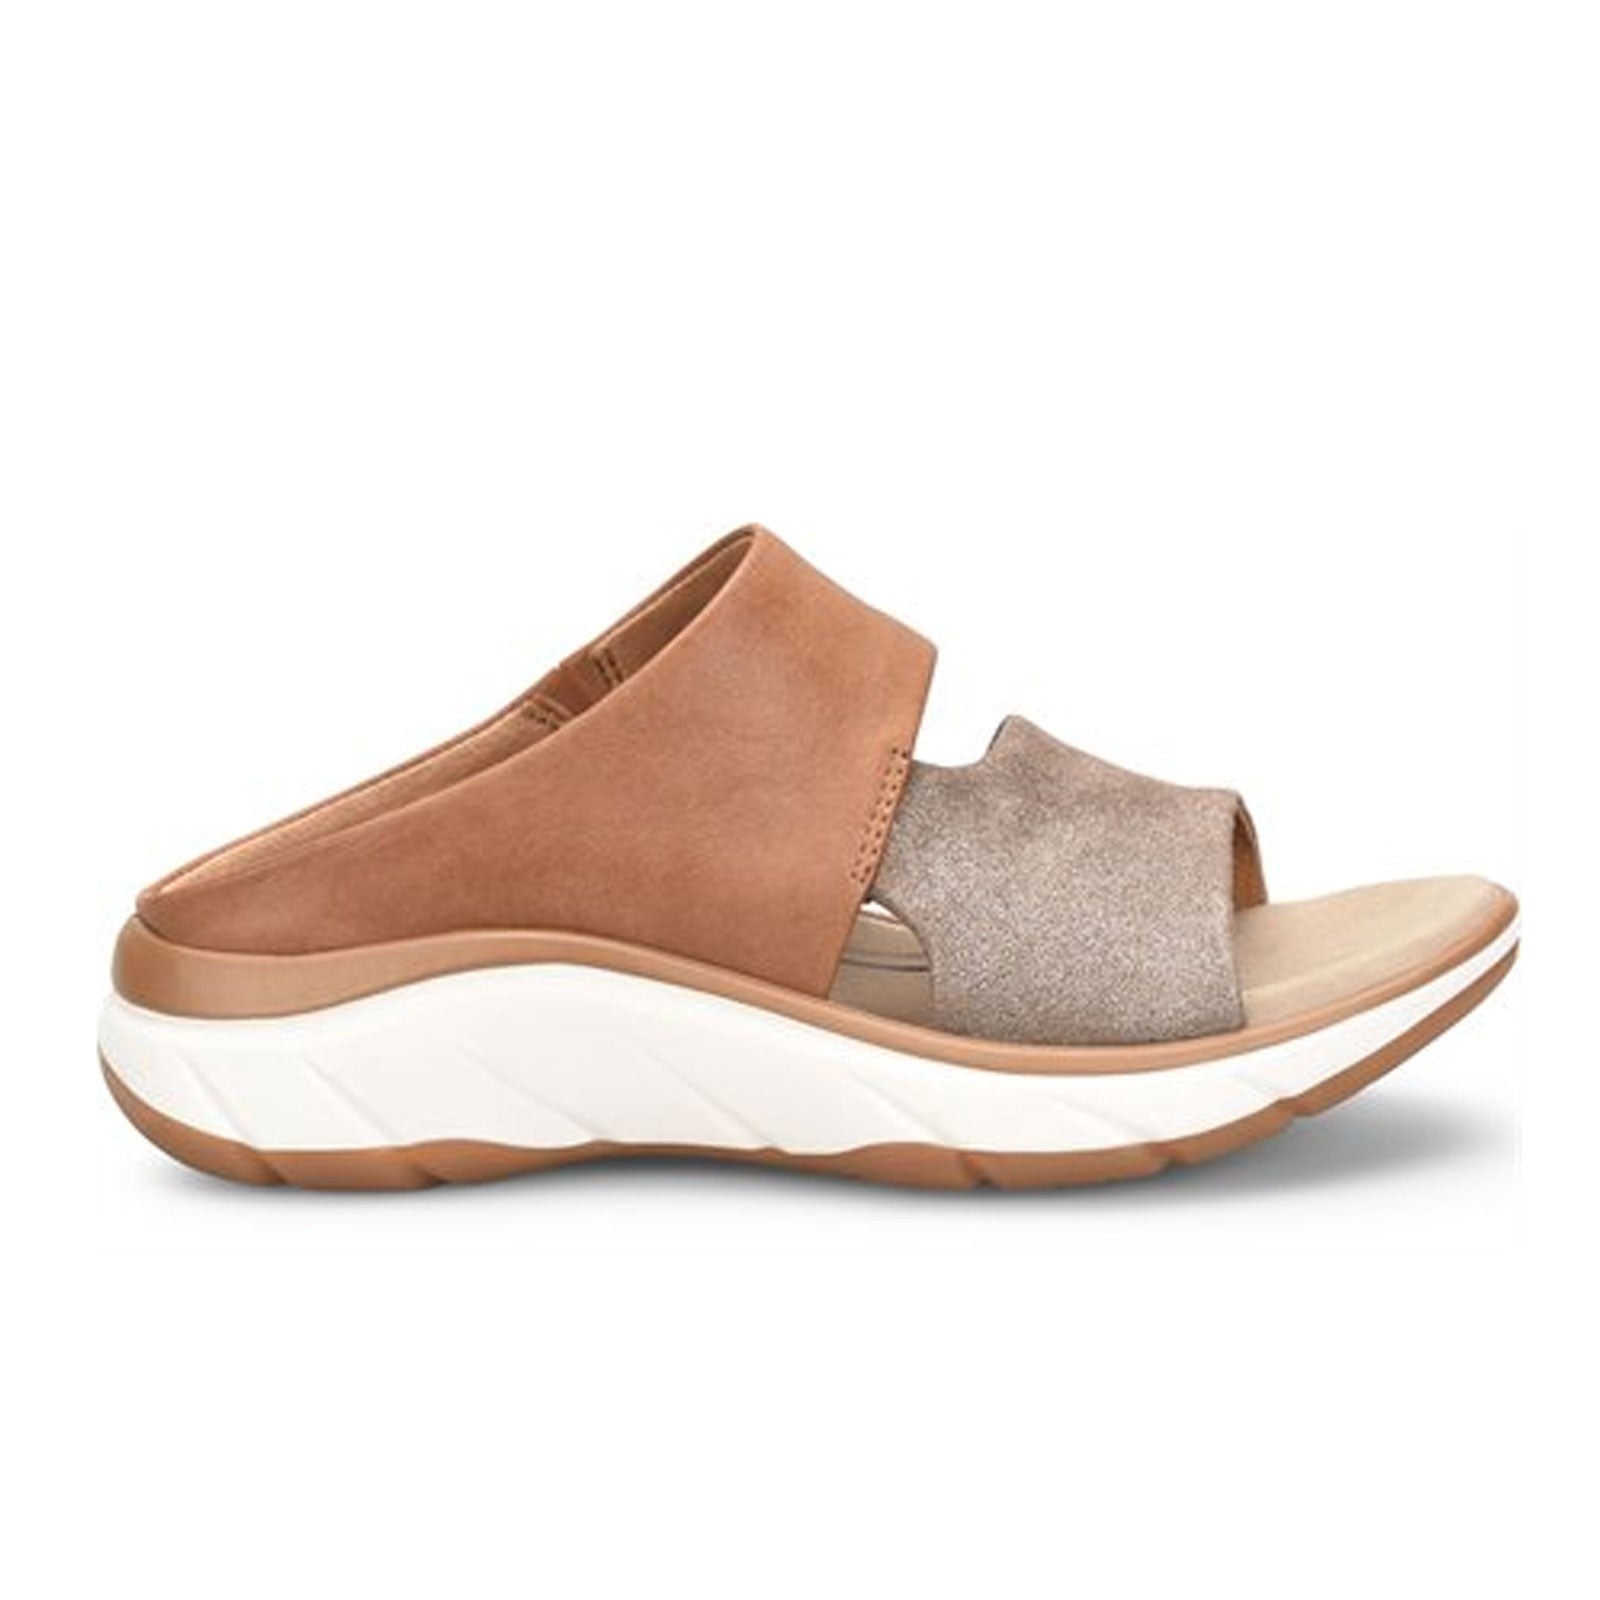 Bionica Airmont (Women) - Bronze/Saddle Sandals - Slide Sandals - The Heel Shoe Fitters